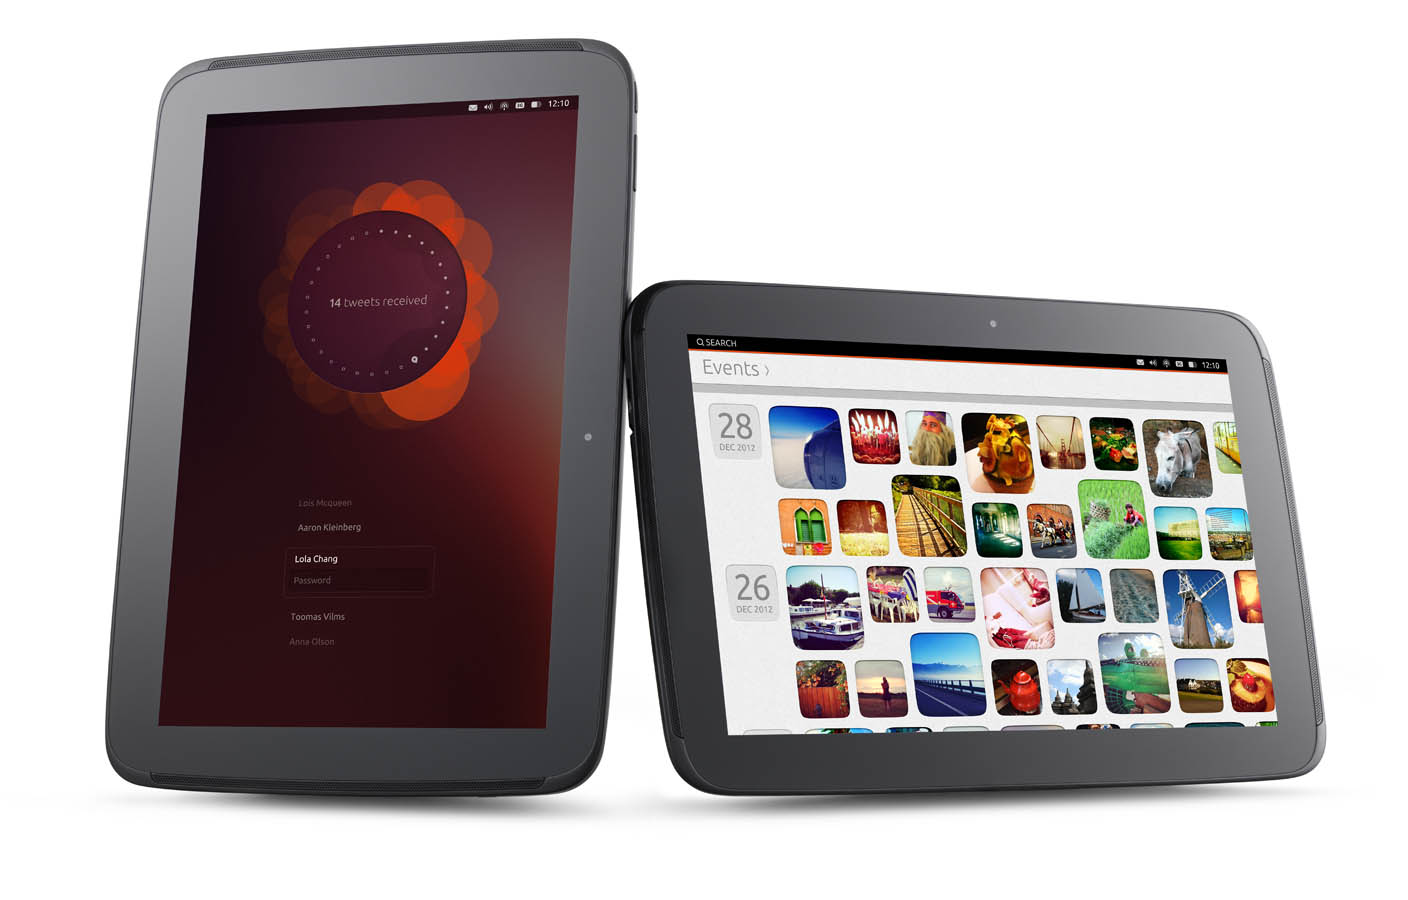 On the left, a login screen in portrait mode. On the right, the Ubuntu events app in landscape.